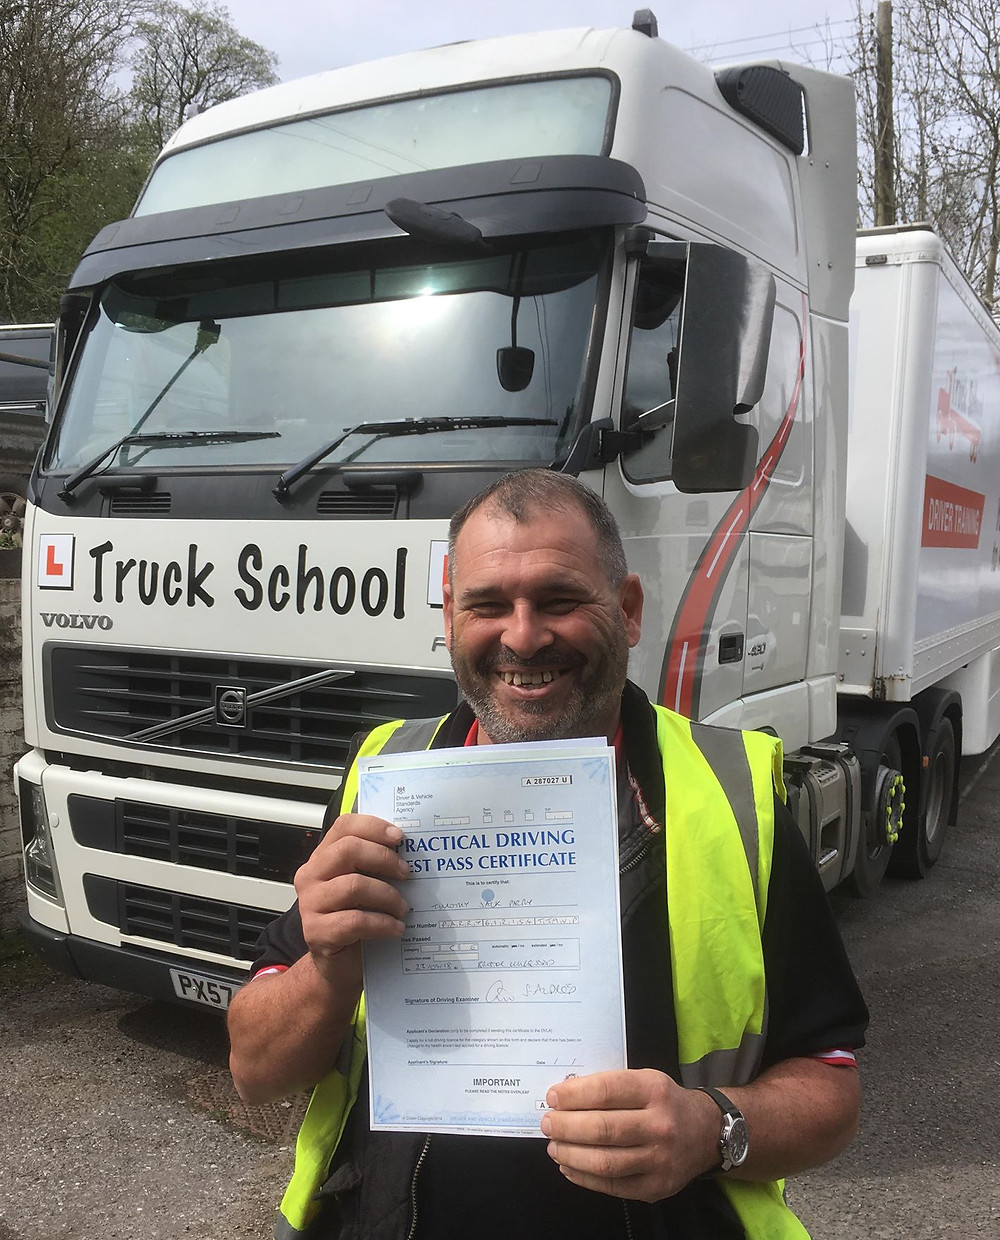 Tim Parry passed his class 1 FIRST TIME with Truck School